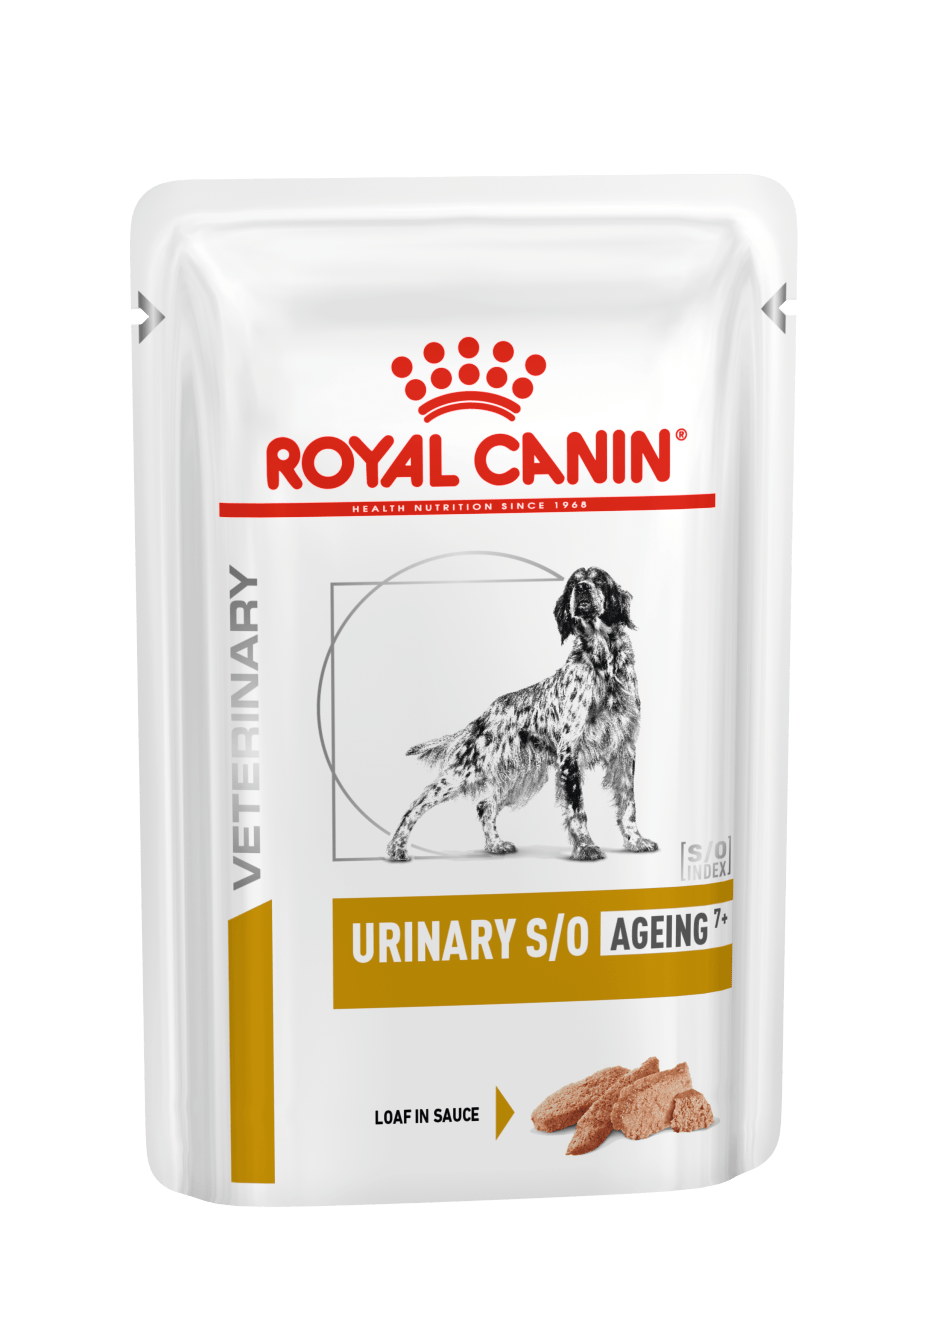 Canine Urinary S/O Ageing 7+ Loaf